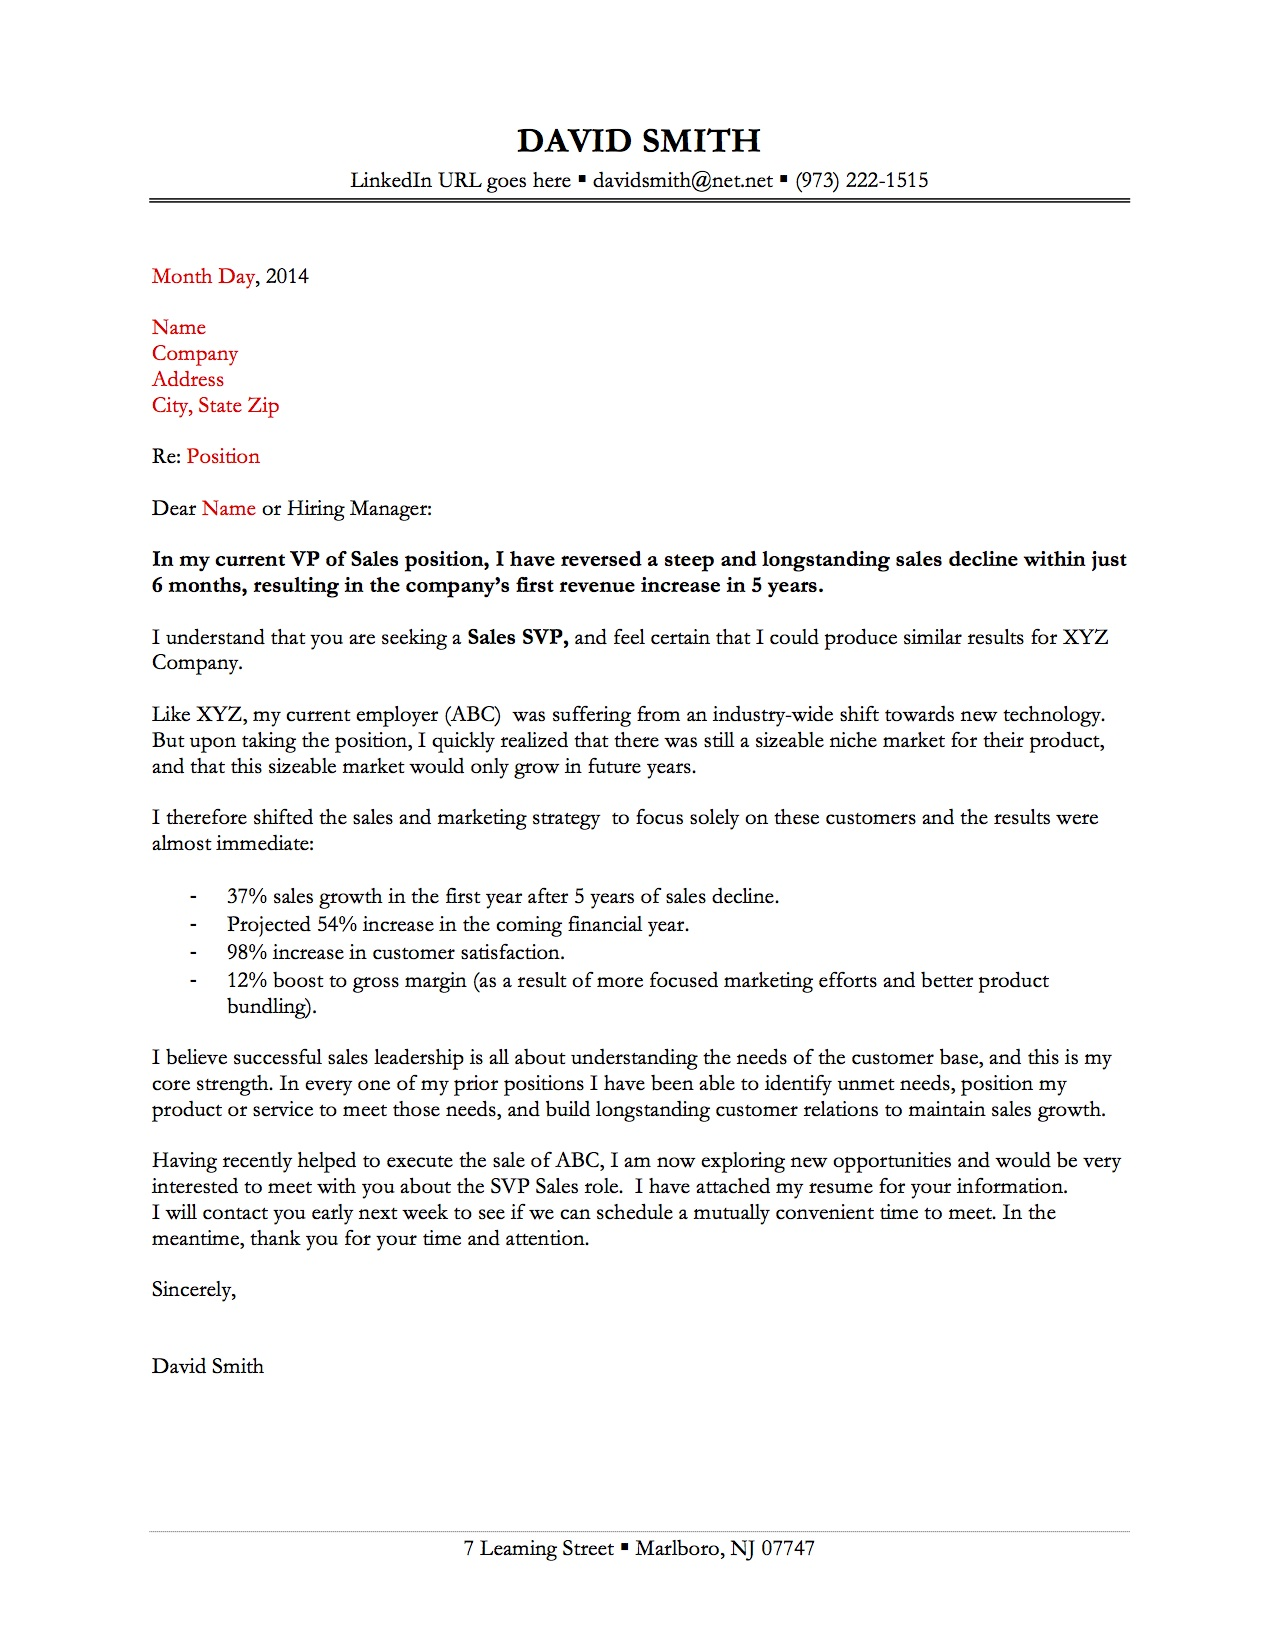 great cover letter samples inspirational how to write